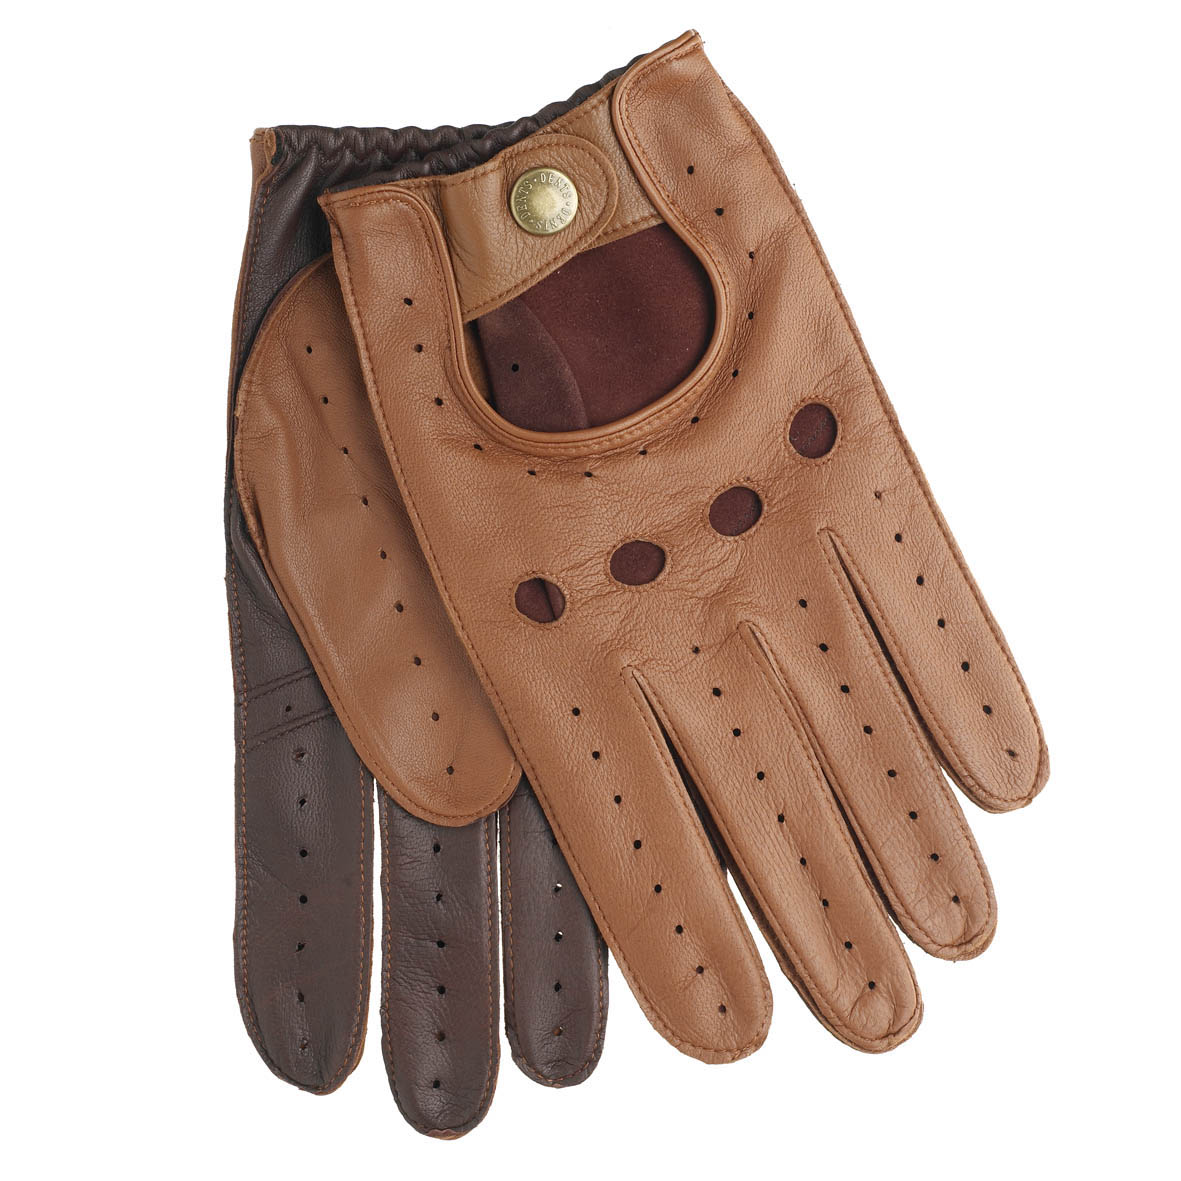 Leather driving gloves dents - Image Is Loading Dents Leather Driving Gloves 5 1021 Cognac English